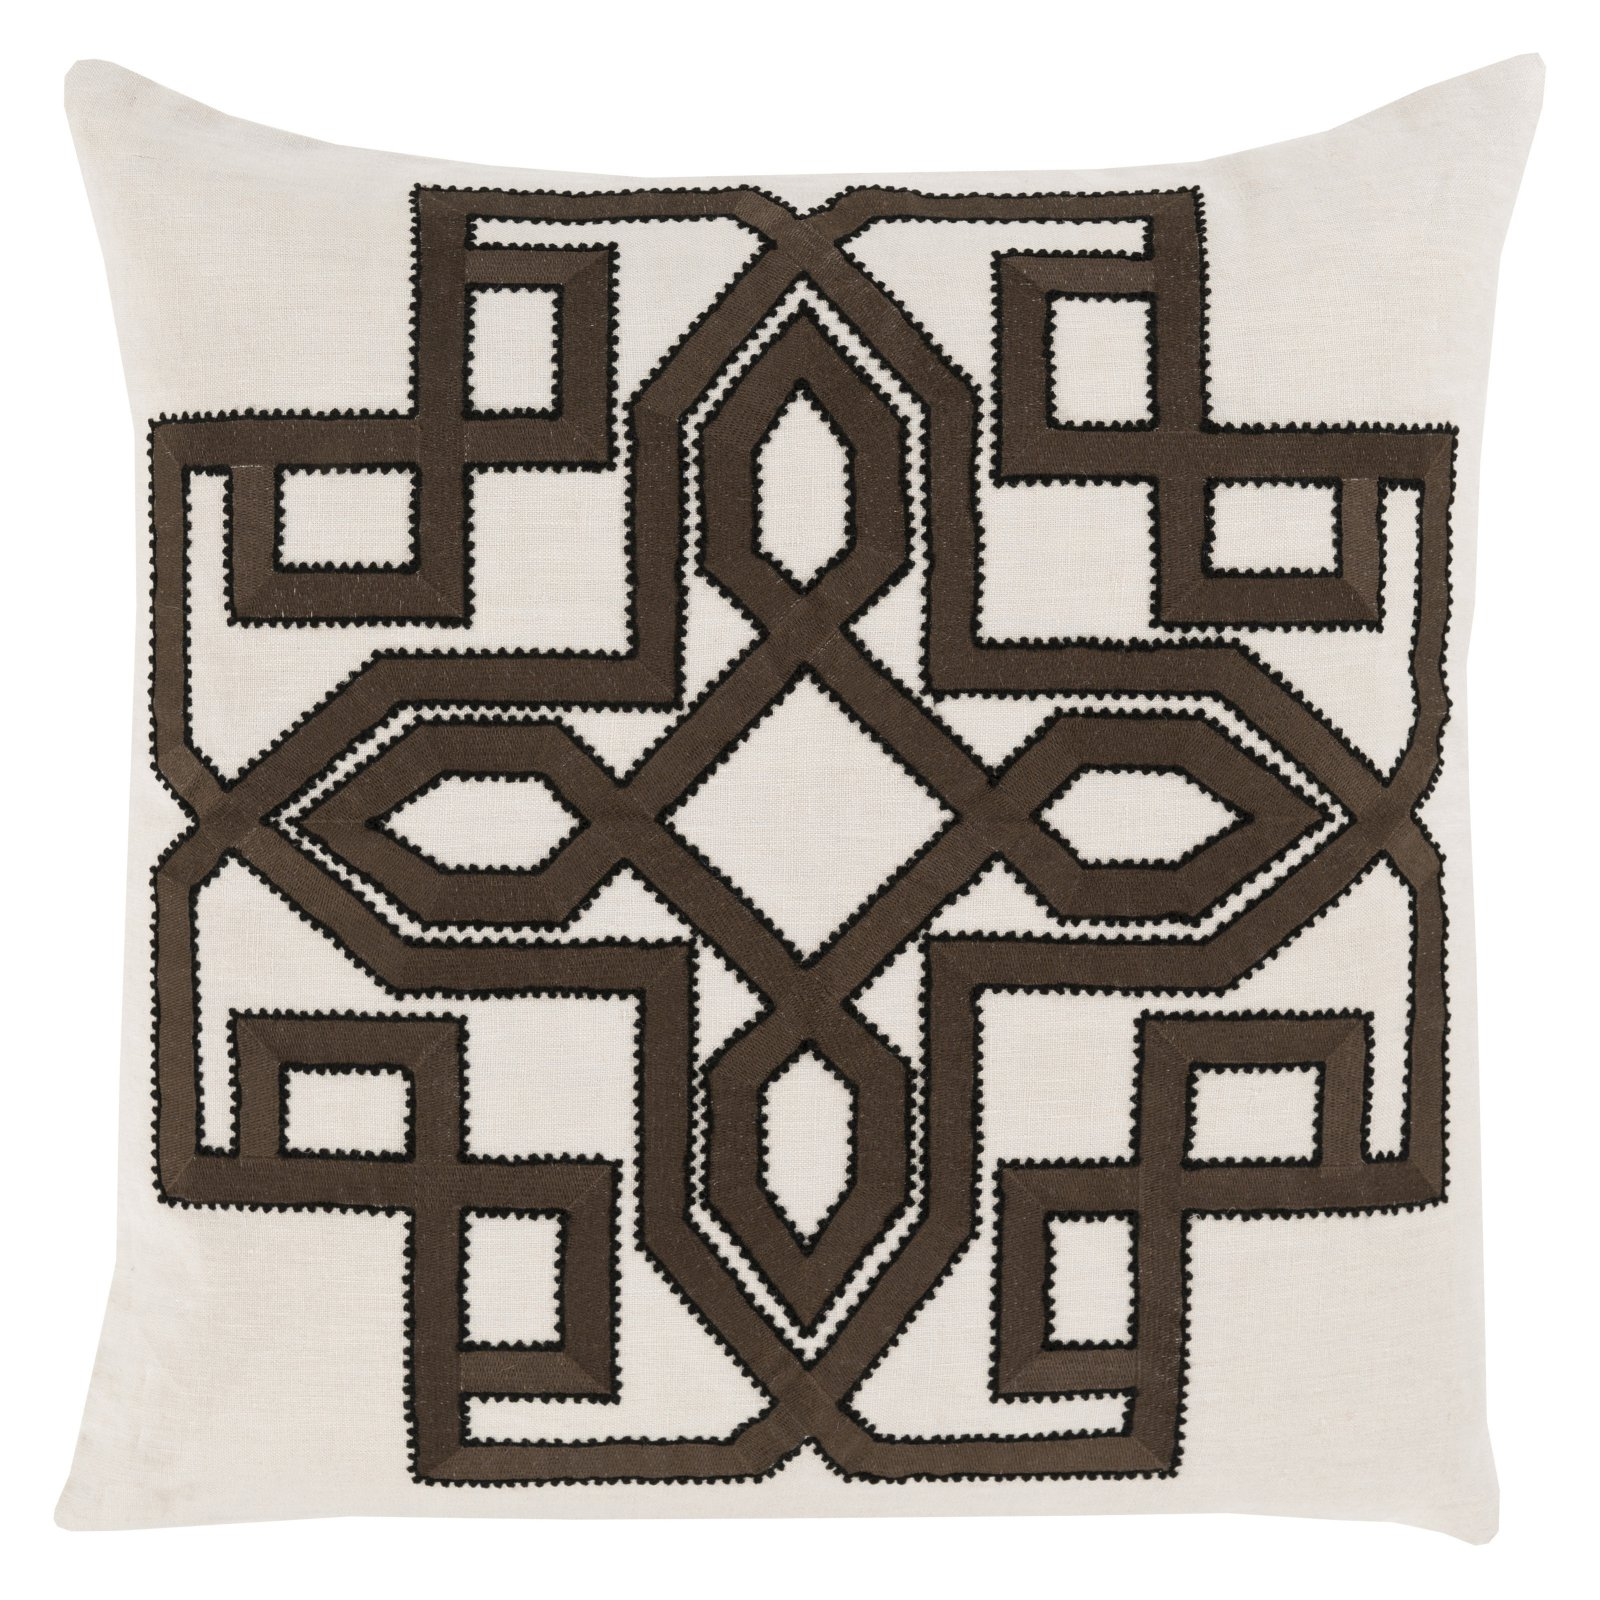 Surya Gatsby Decorative Throw Pillow